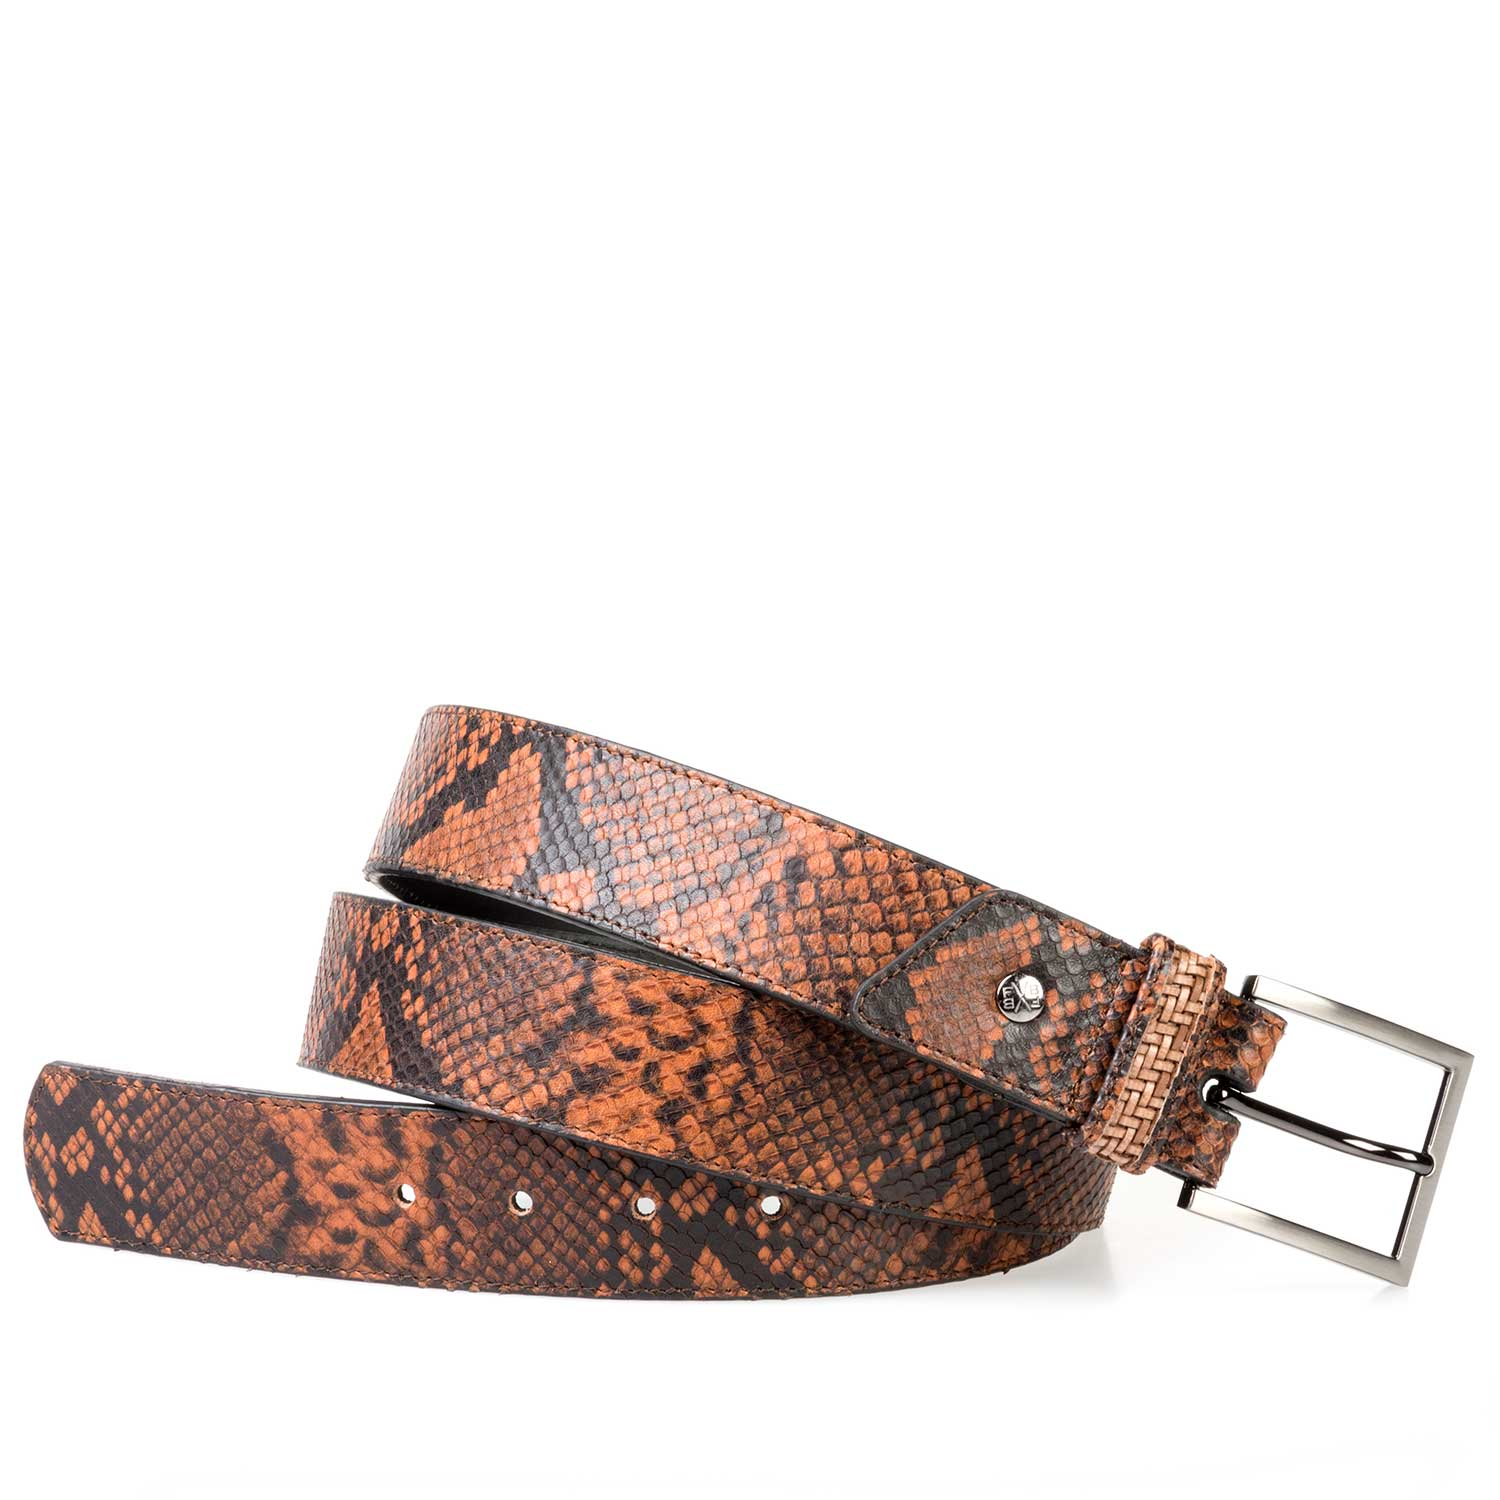 75179/03 - Cognac-coloured leather belt finished with a snake print